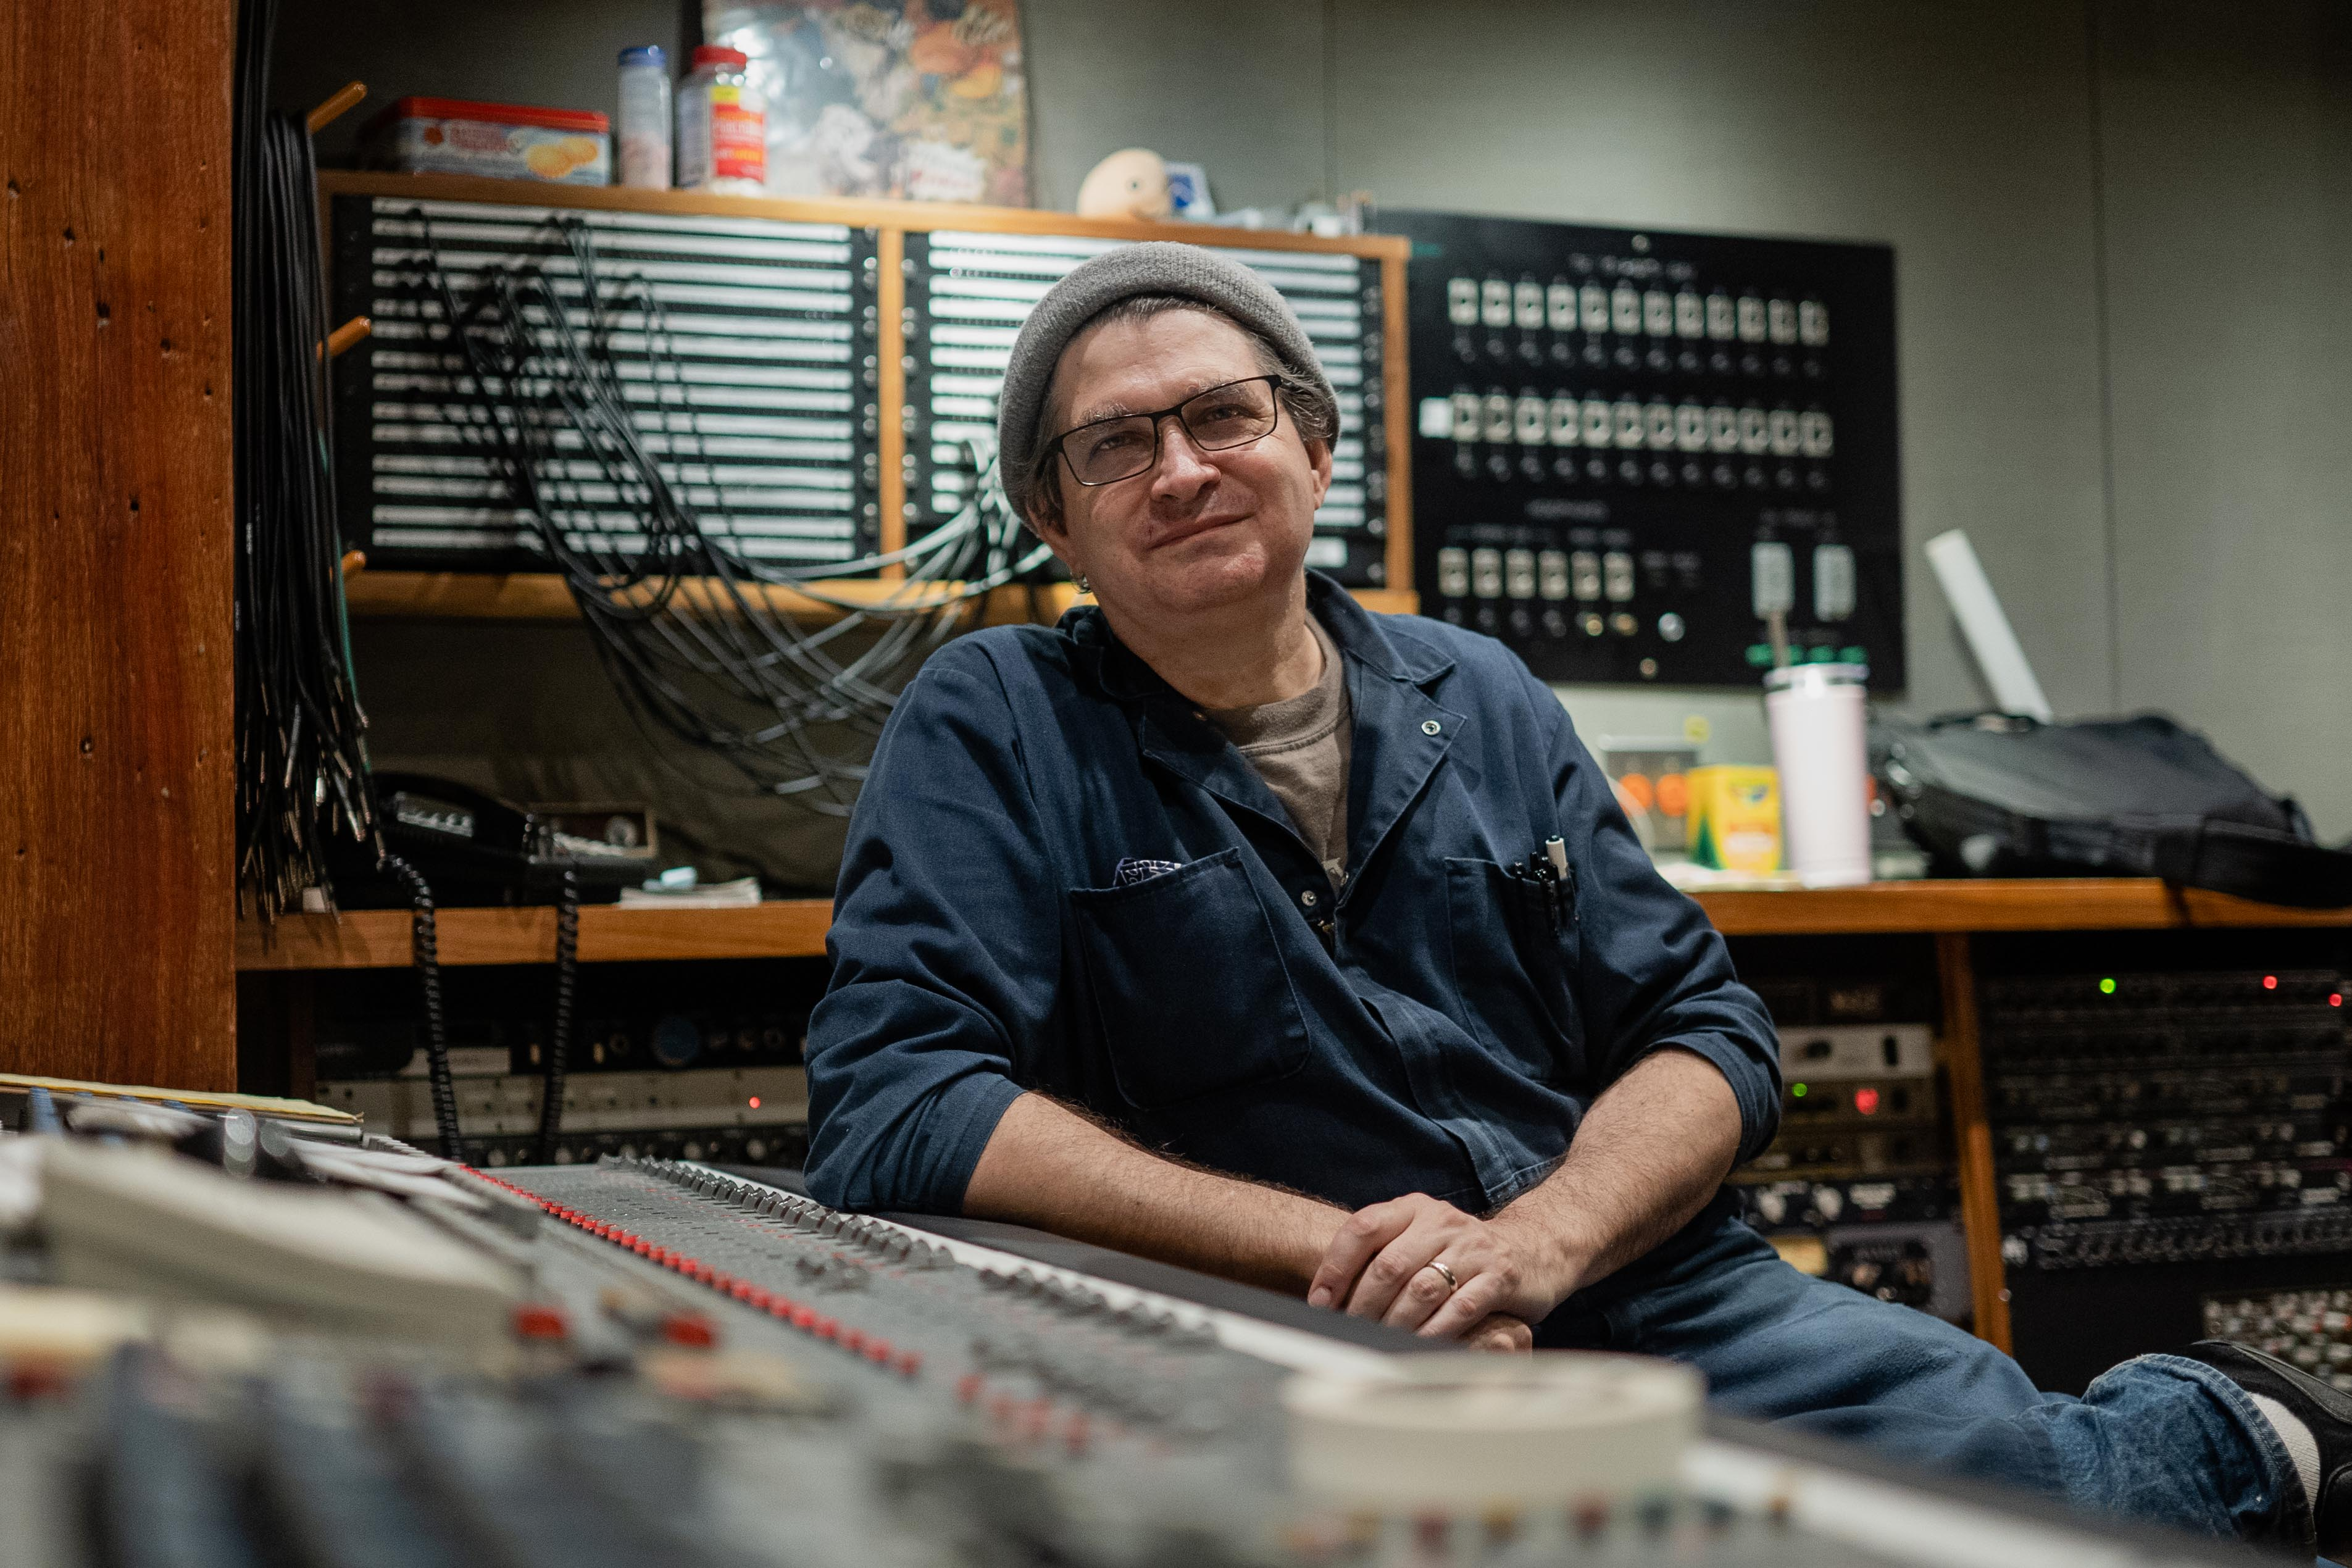 Steve Albini, a recording engineer, at his Electrical Audio studio in Chicago's Avondale neighborhood in August 2021.